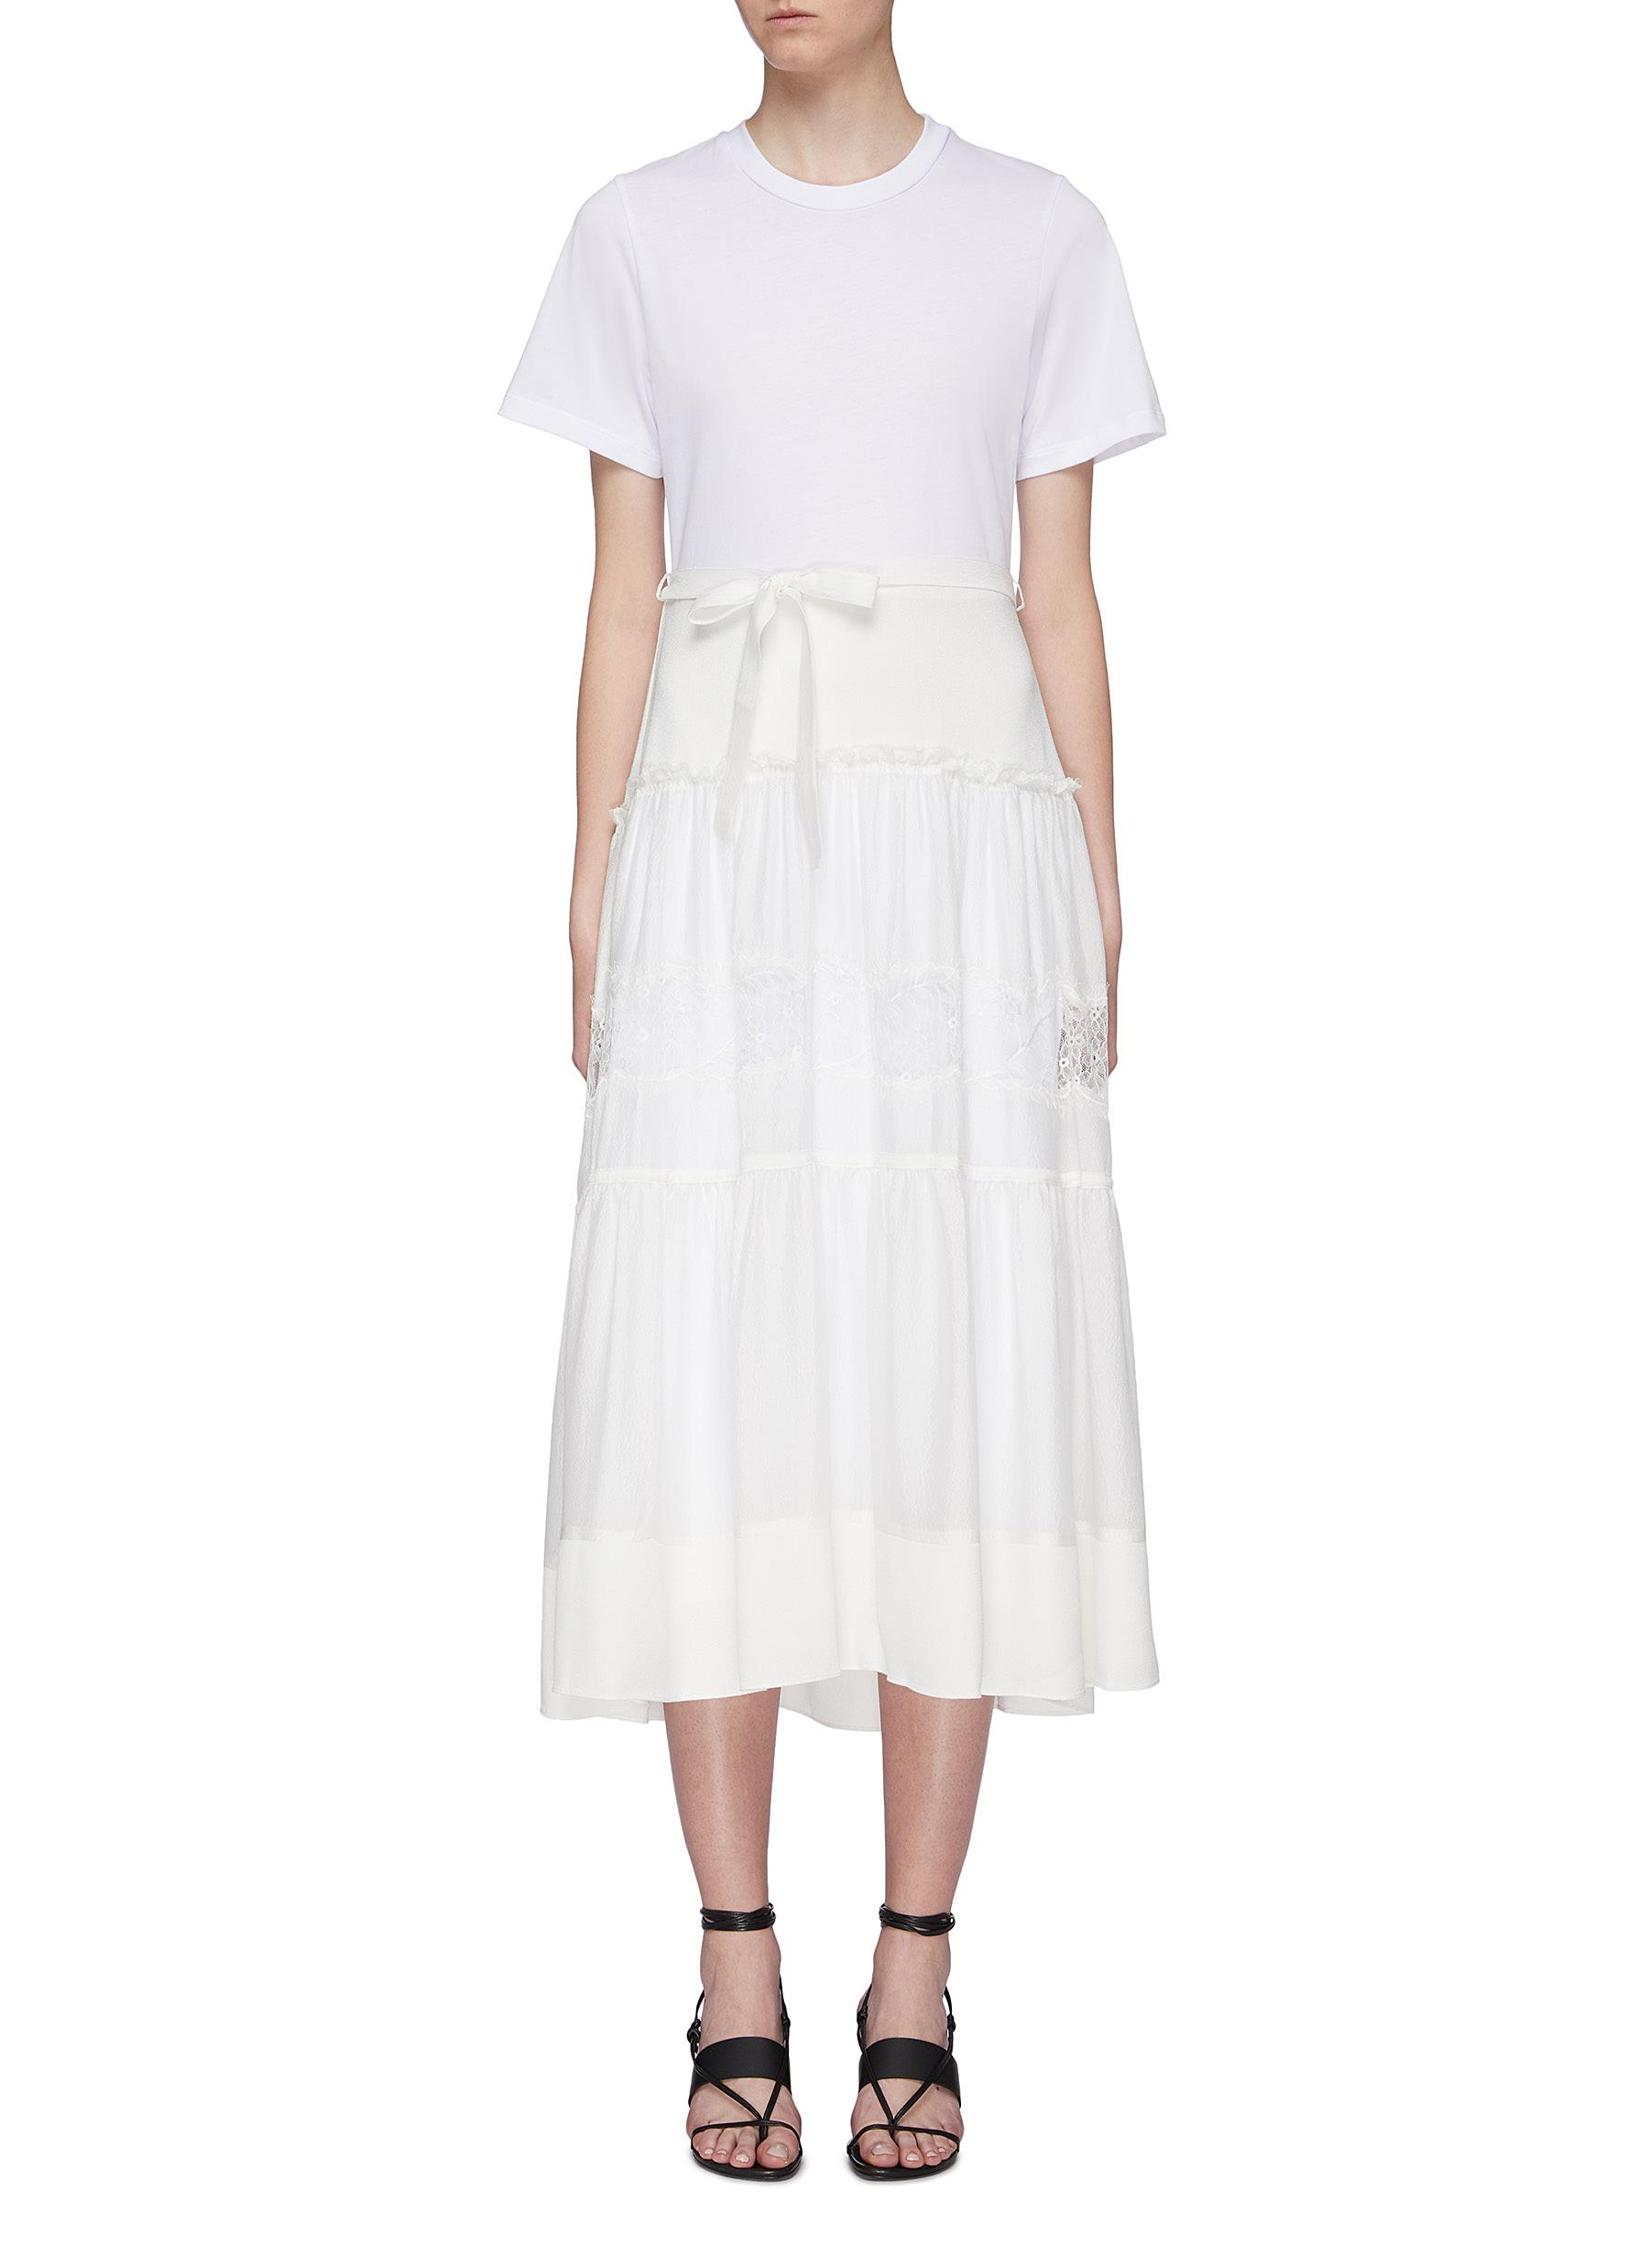 Belted lace insert tiered skirt silk T-shirt dress by 3.1 Phillip Lim